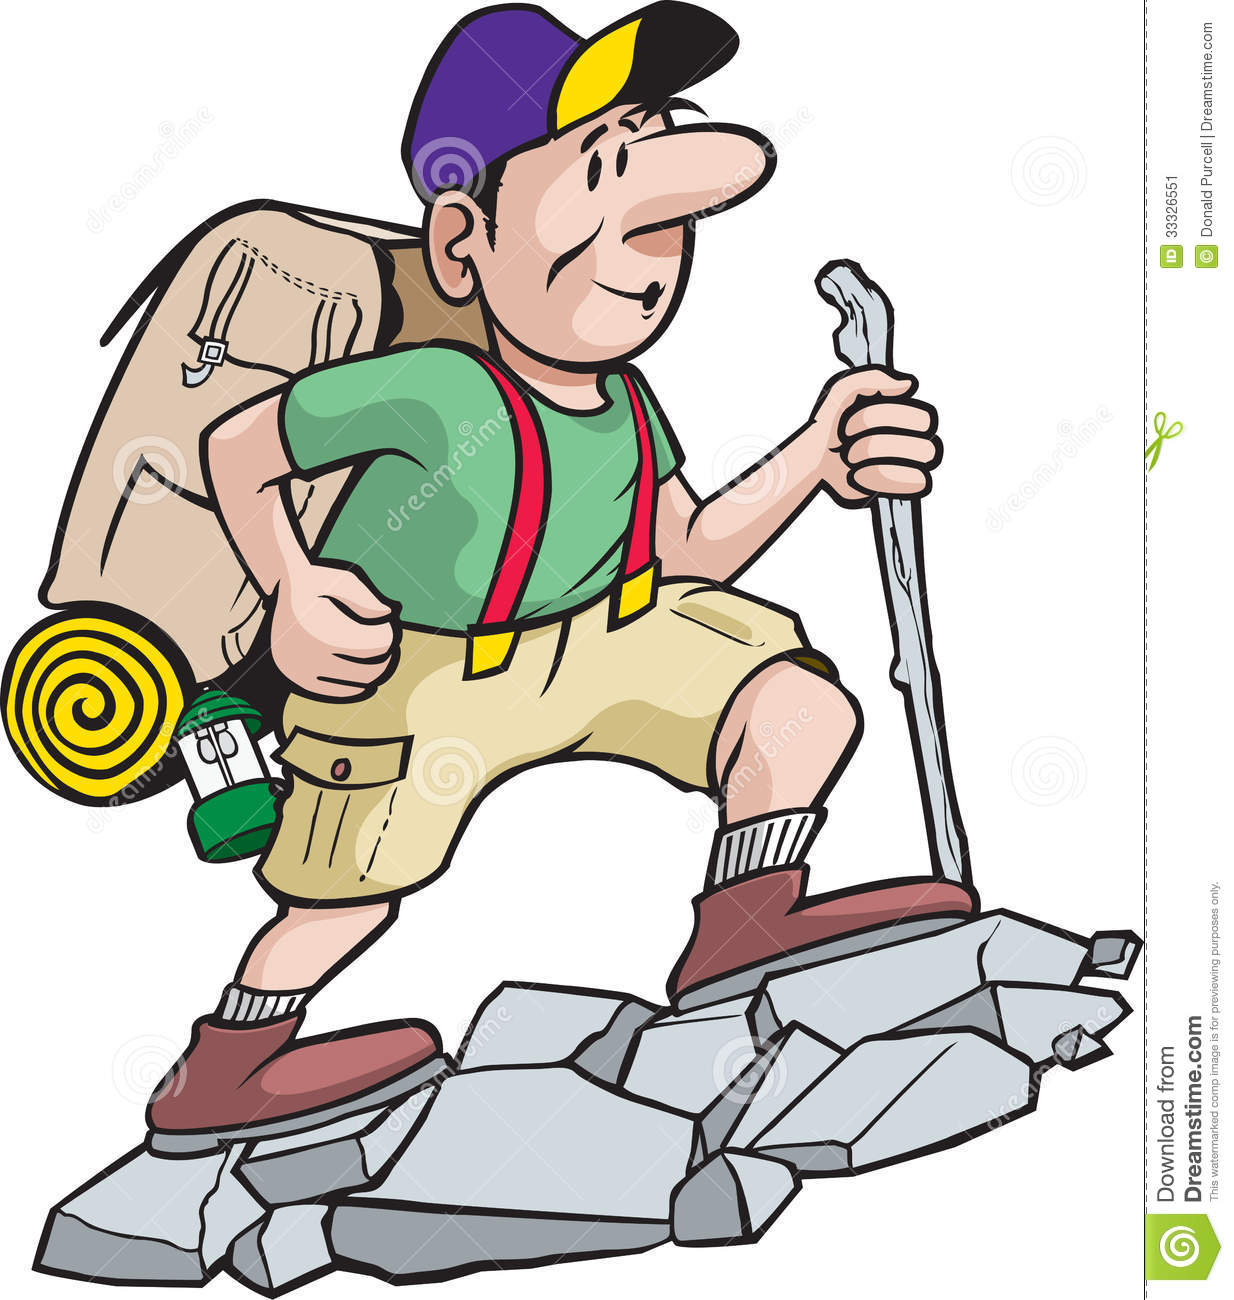 Free Hiking Clipart Images.